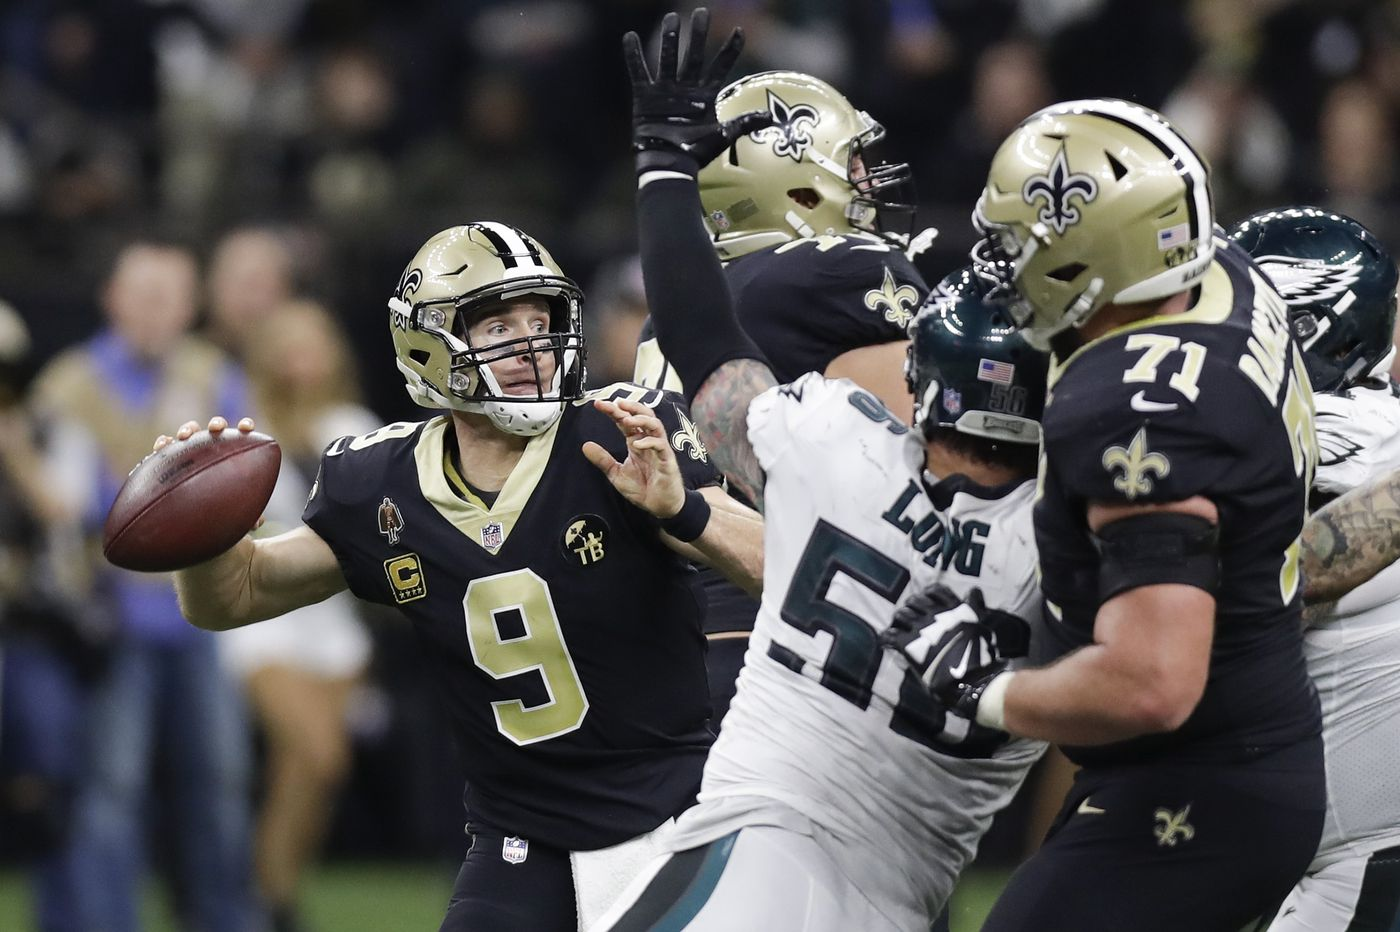 Sports betting Saints are Super Bowl favorites opening lines out for NFC AFC Championship games